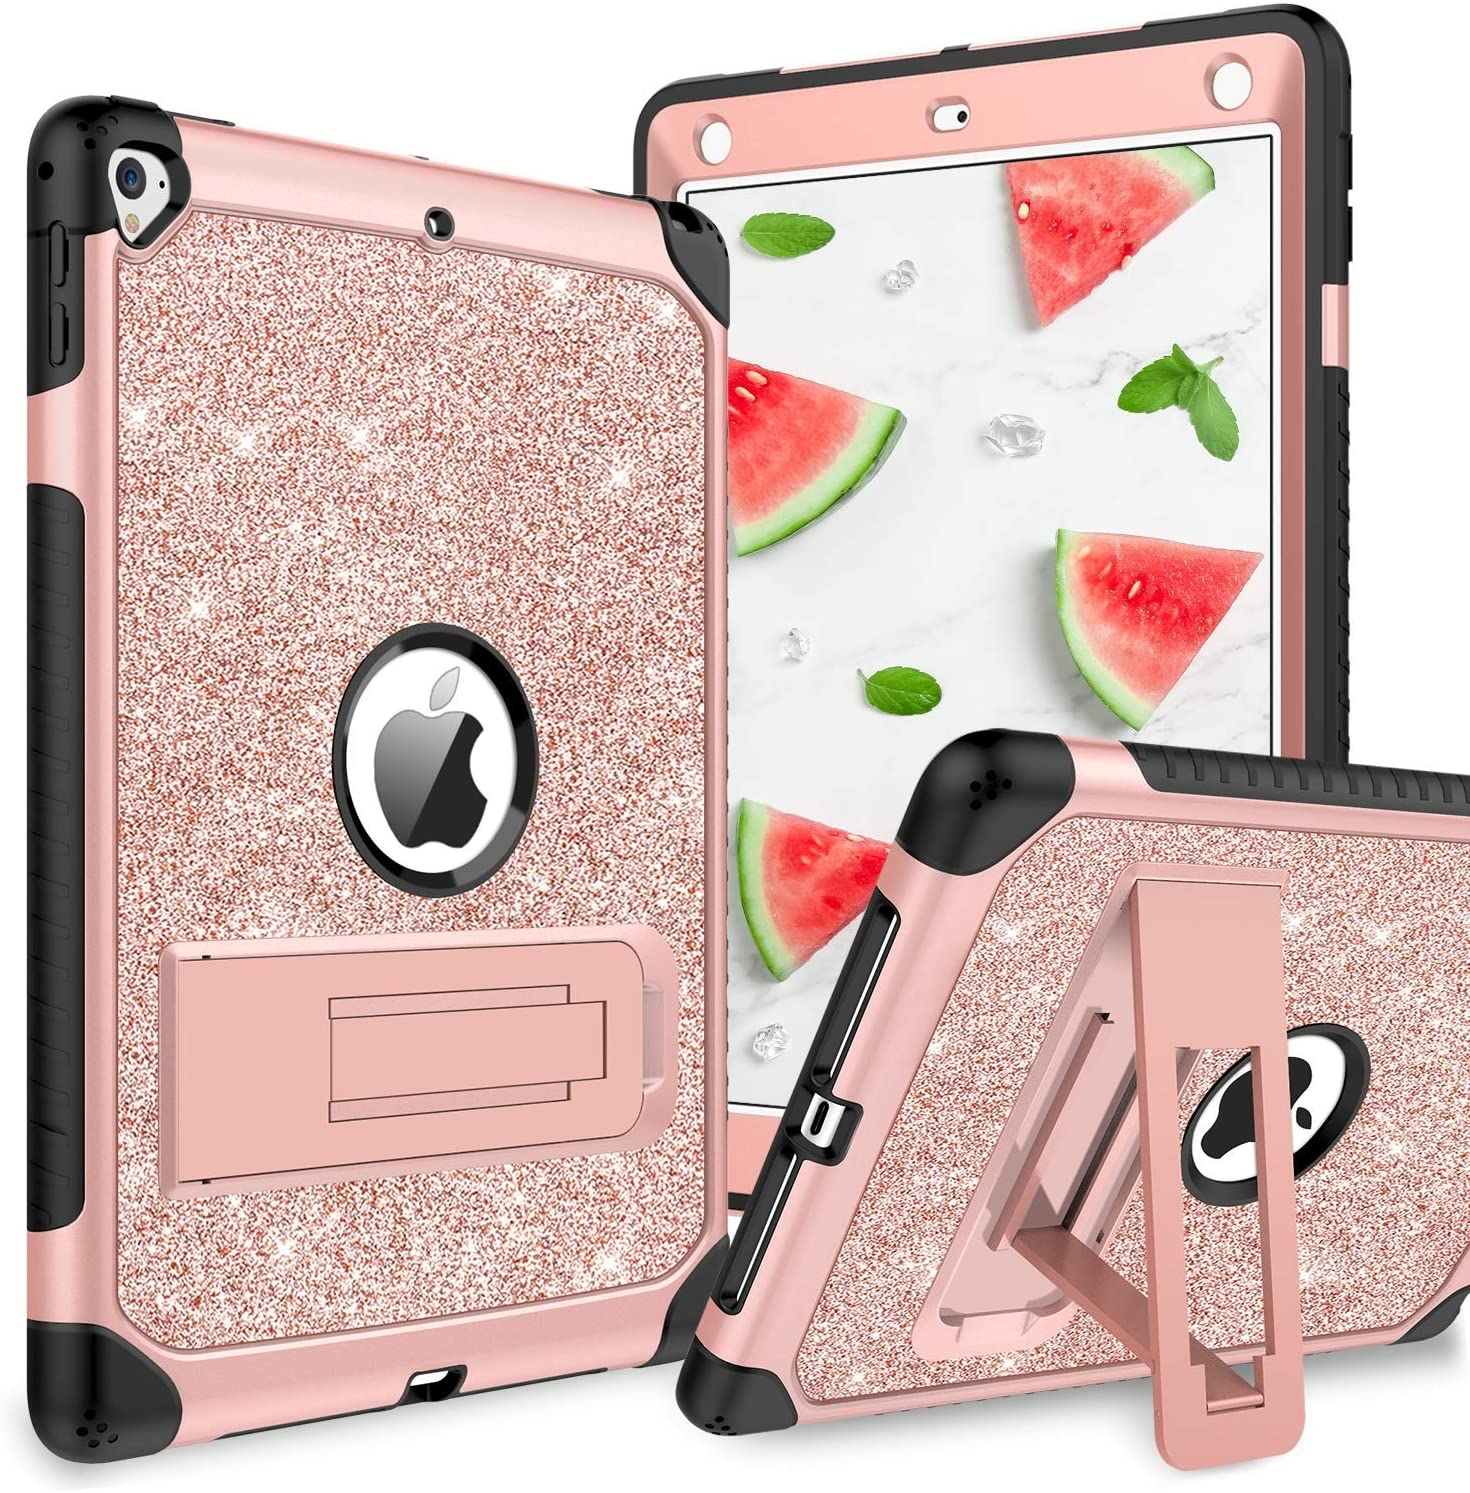 YINLAI Case for iPad Air 2/iPad 9.7 2017/2018/Pro 9.7, iPad 5th/6th Generation Case, Glitter 3 Layer Full Body Protective Kickstand Durable Rugged Shockproof Girls Women Kids Tablet Cover, Rose Gold